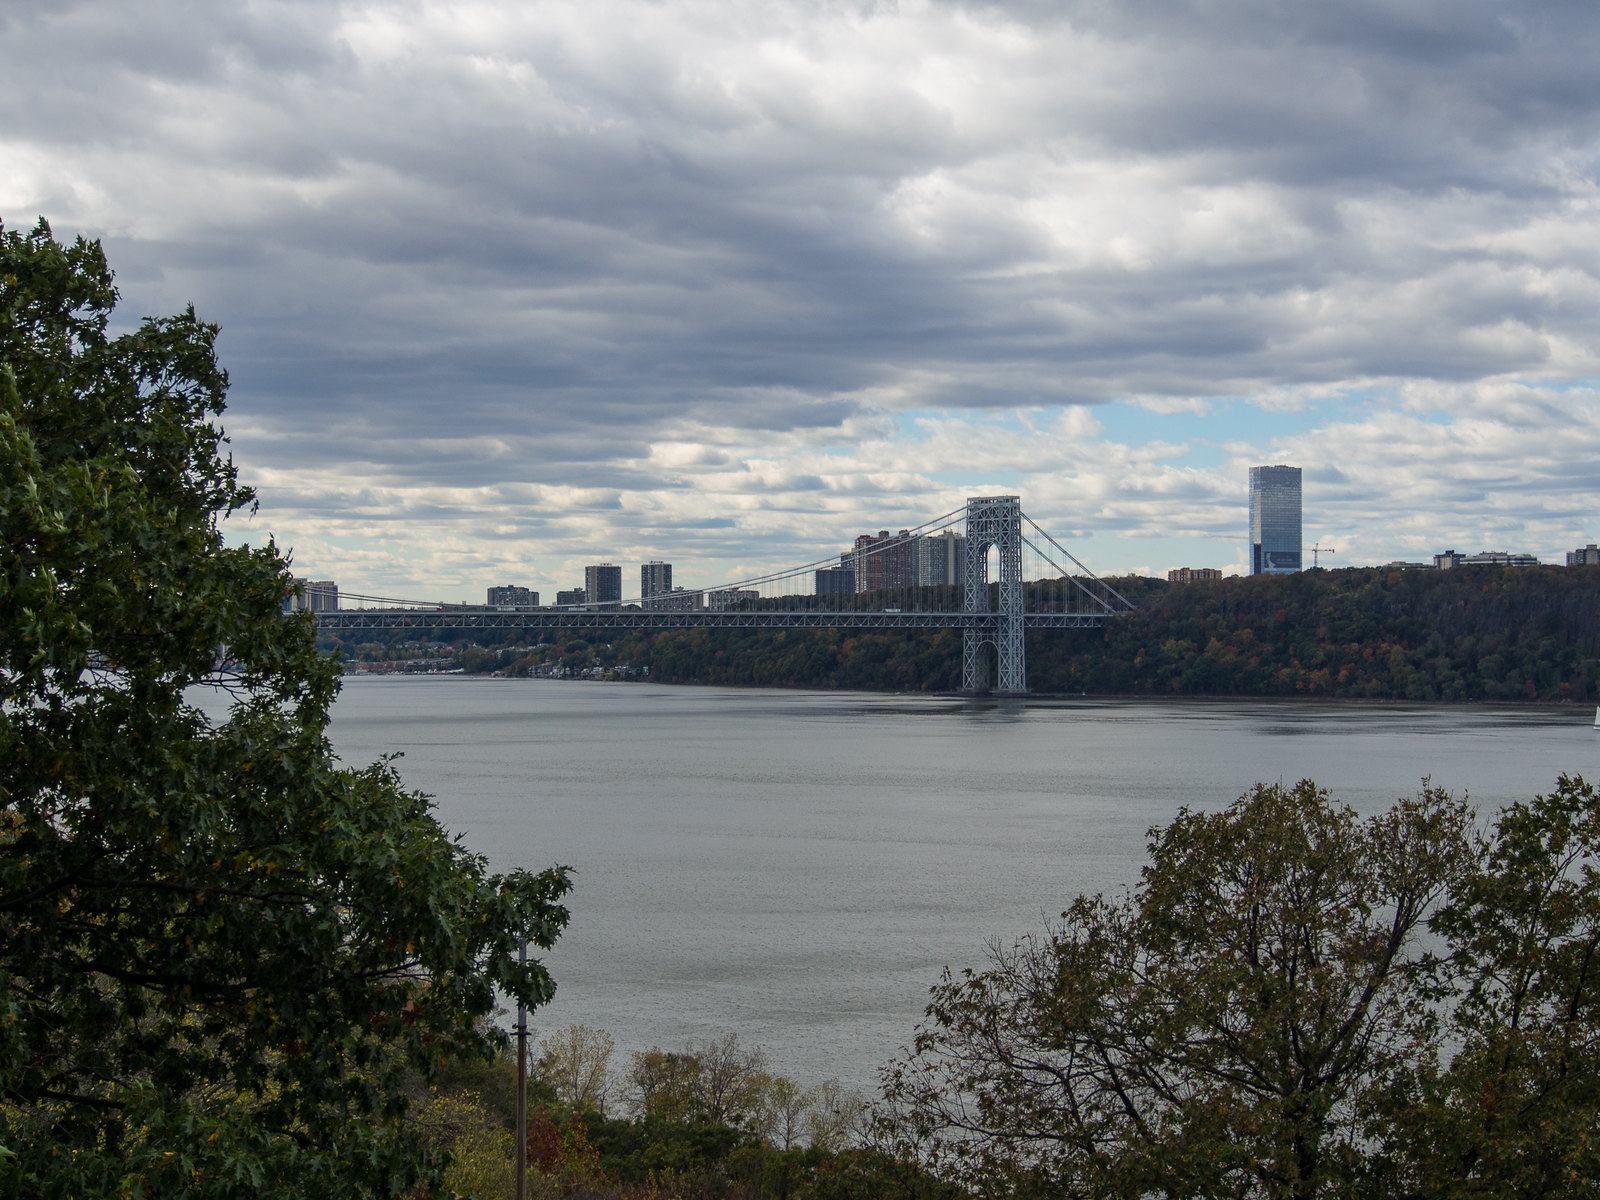 George Washington Bridge from the Cloisters